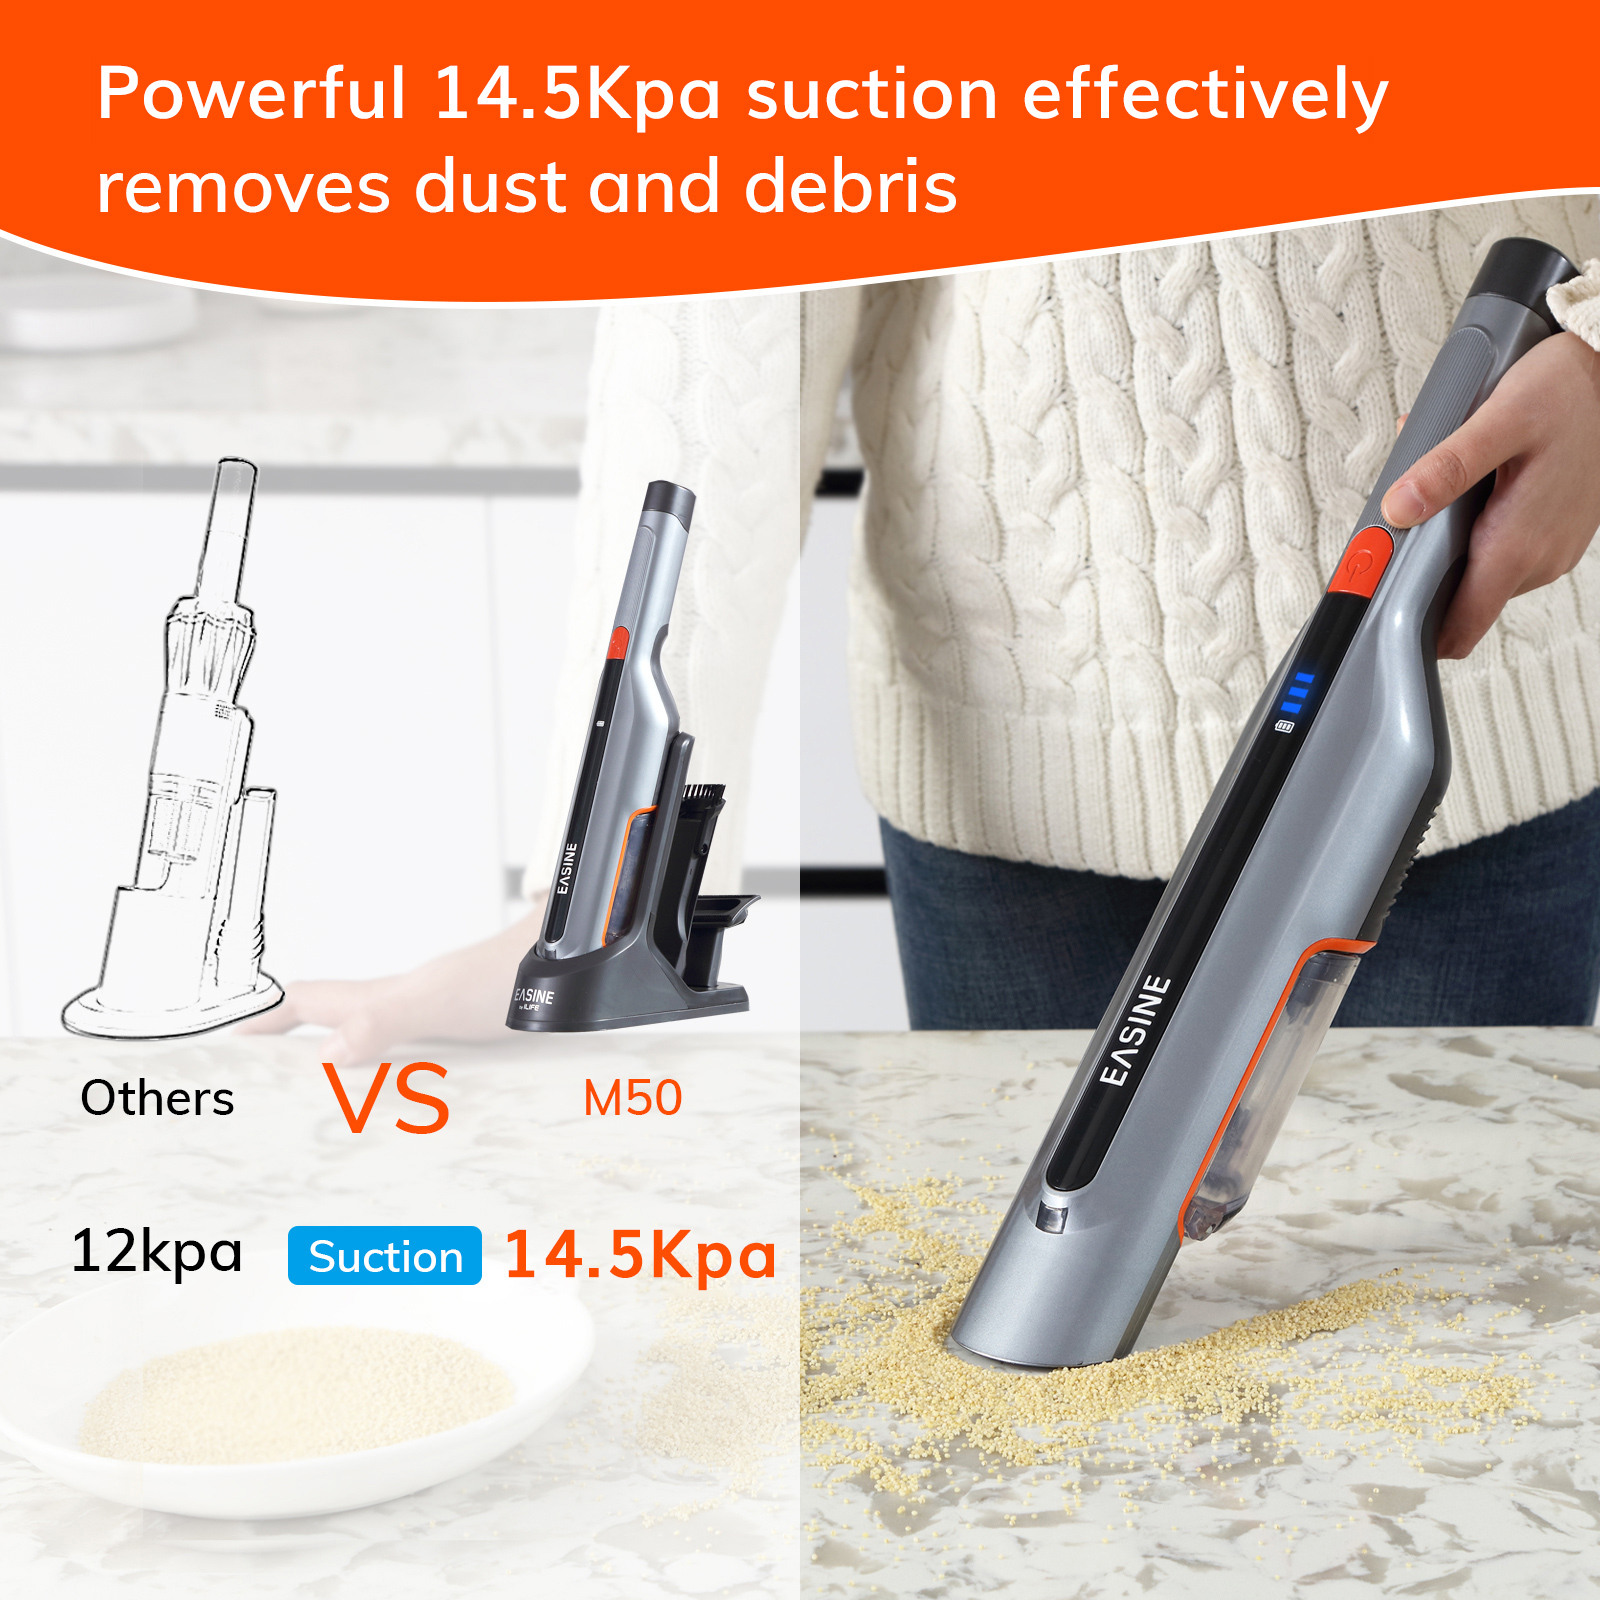 EASINE by ILIFE M50 Handheld Car Vacuum Cleaner – 14,500Pa Powerful Suction,  Type-C & USB Charging, 2 Hours Fast Charge 3